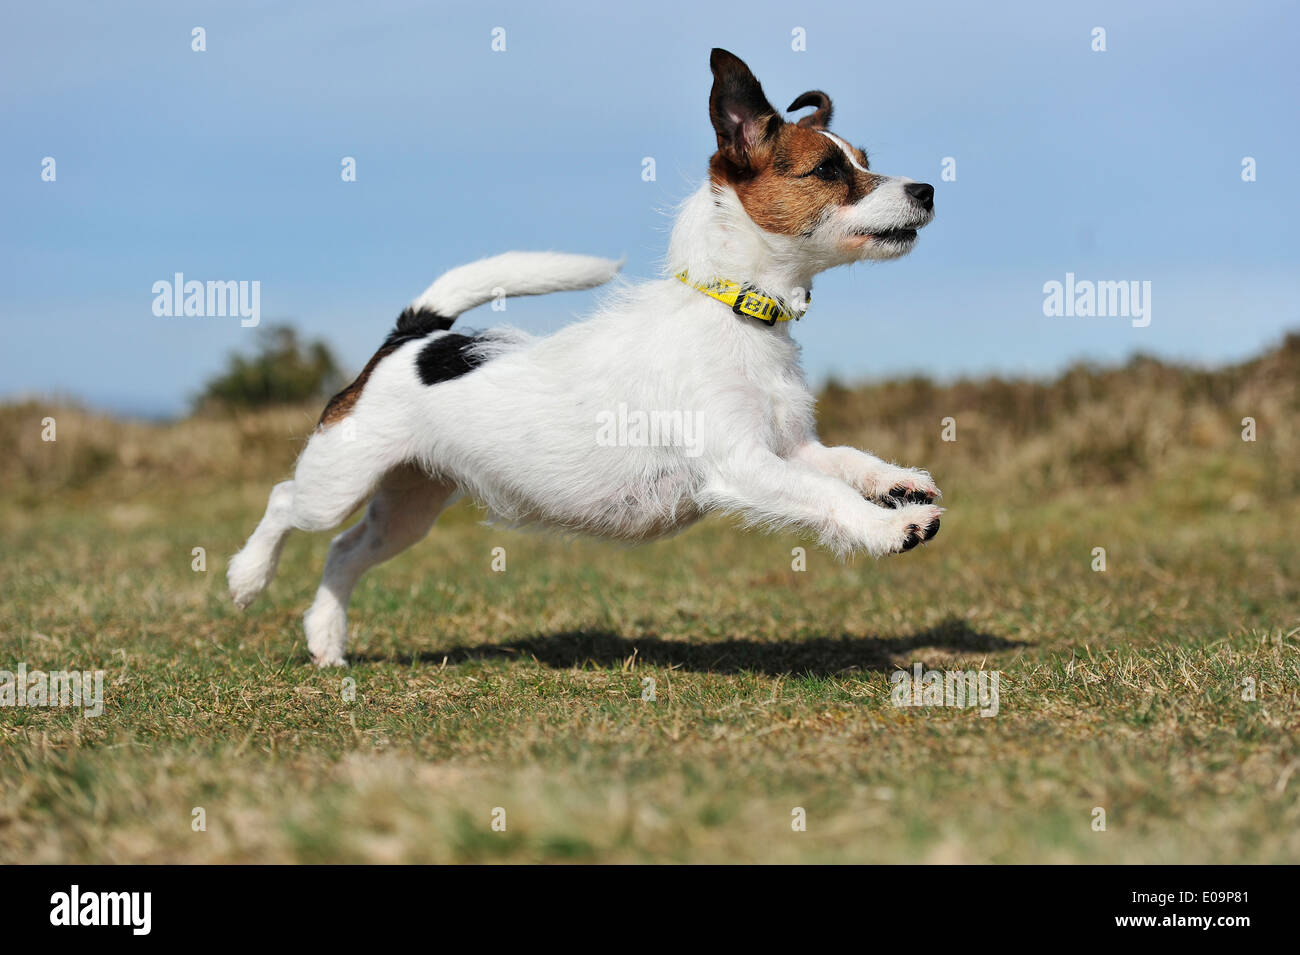 leaping jack russell terrier dog - Stock Image